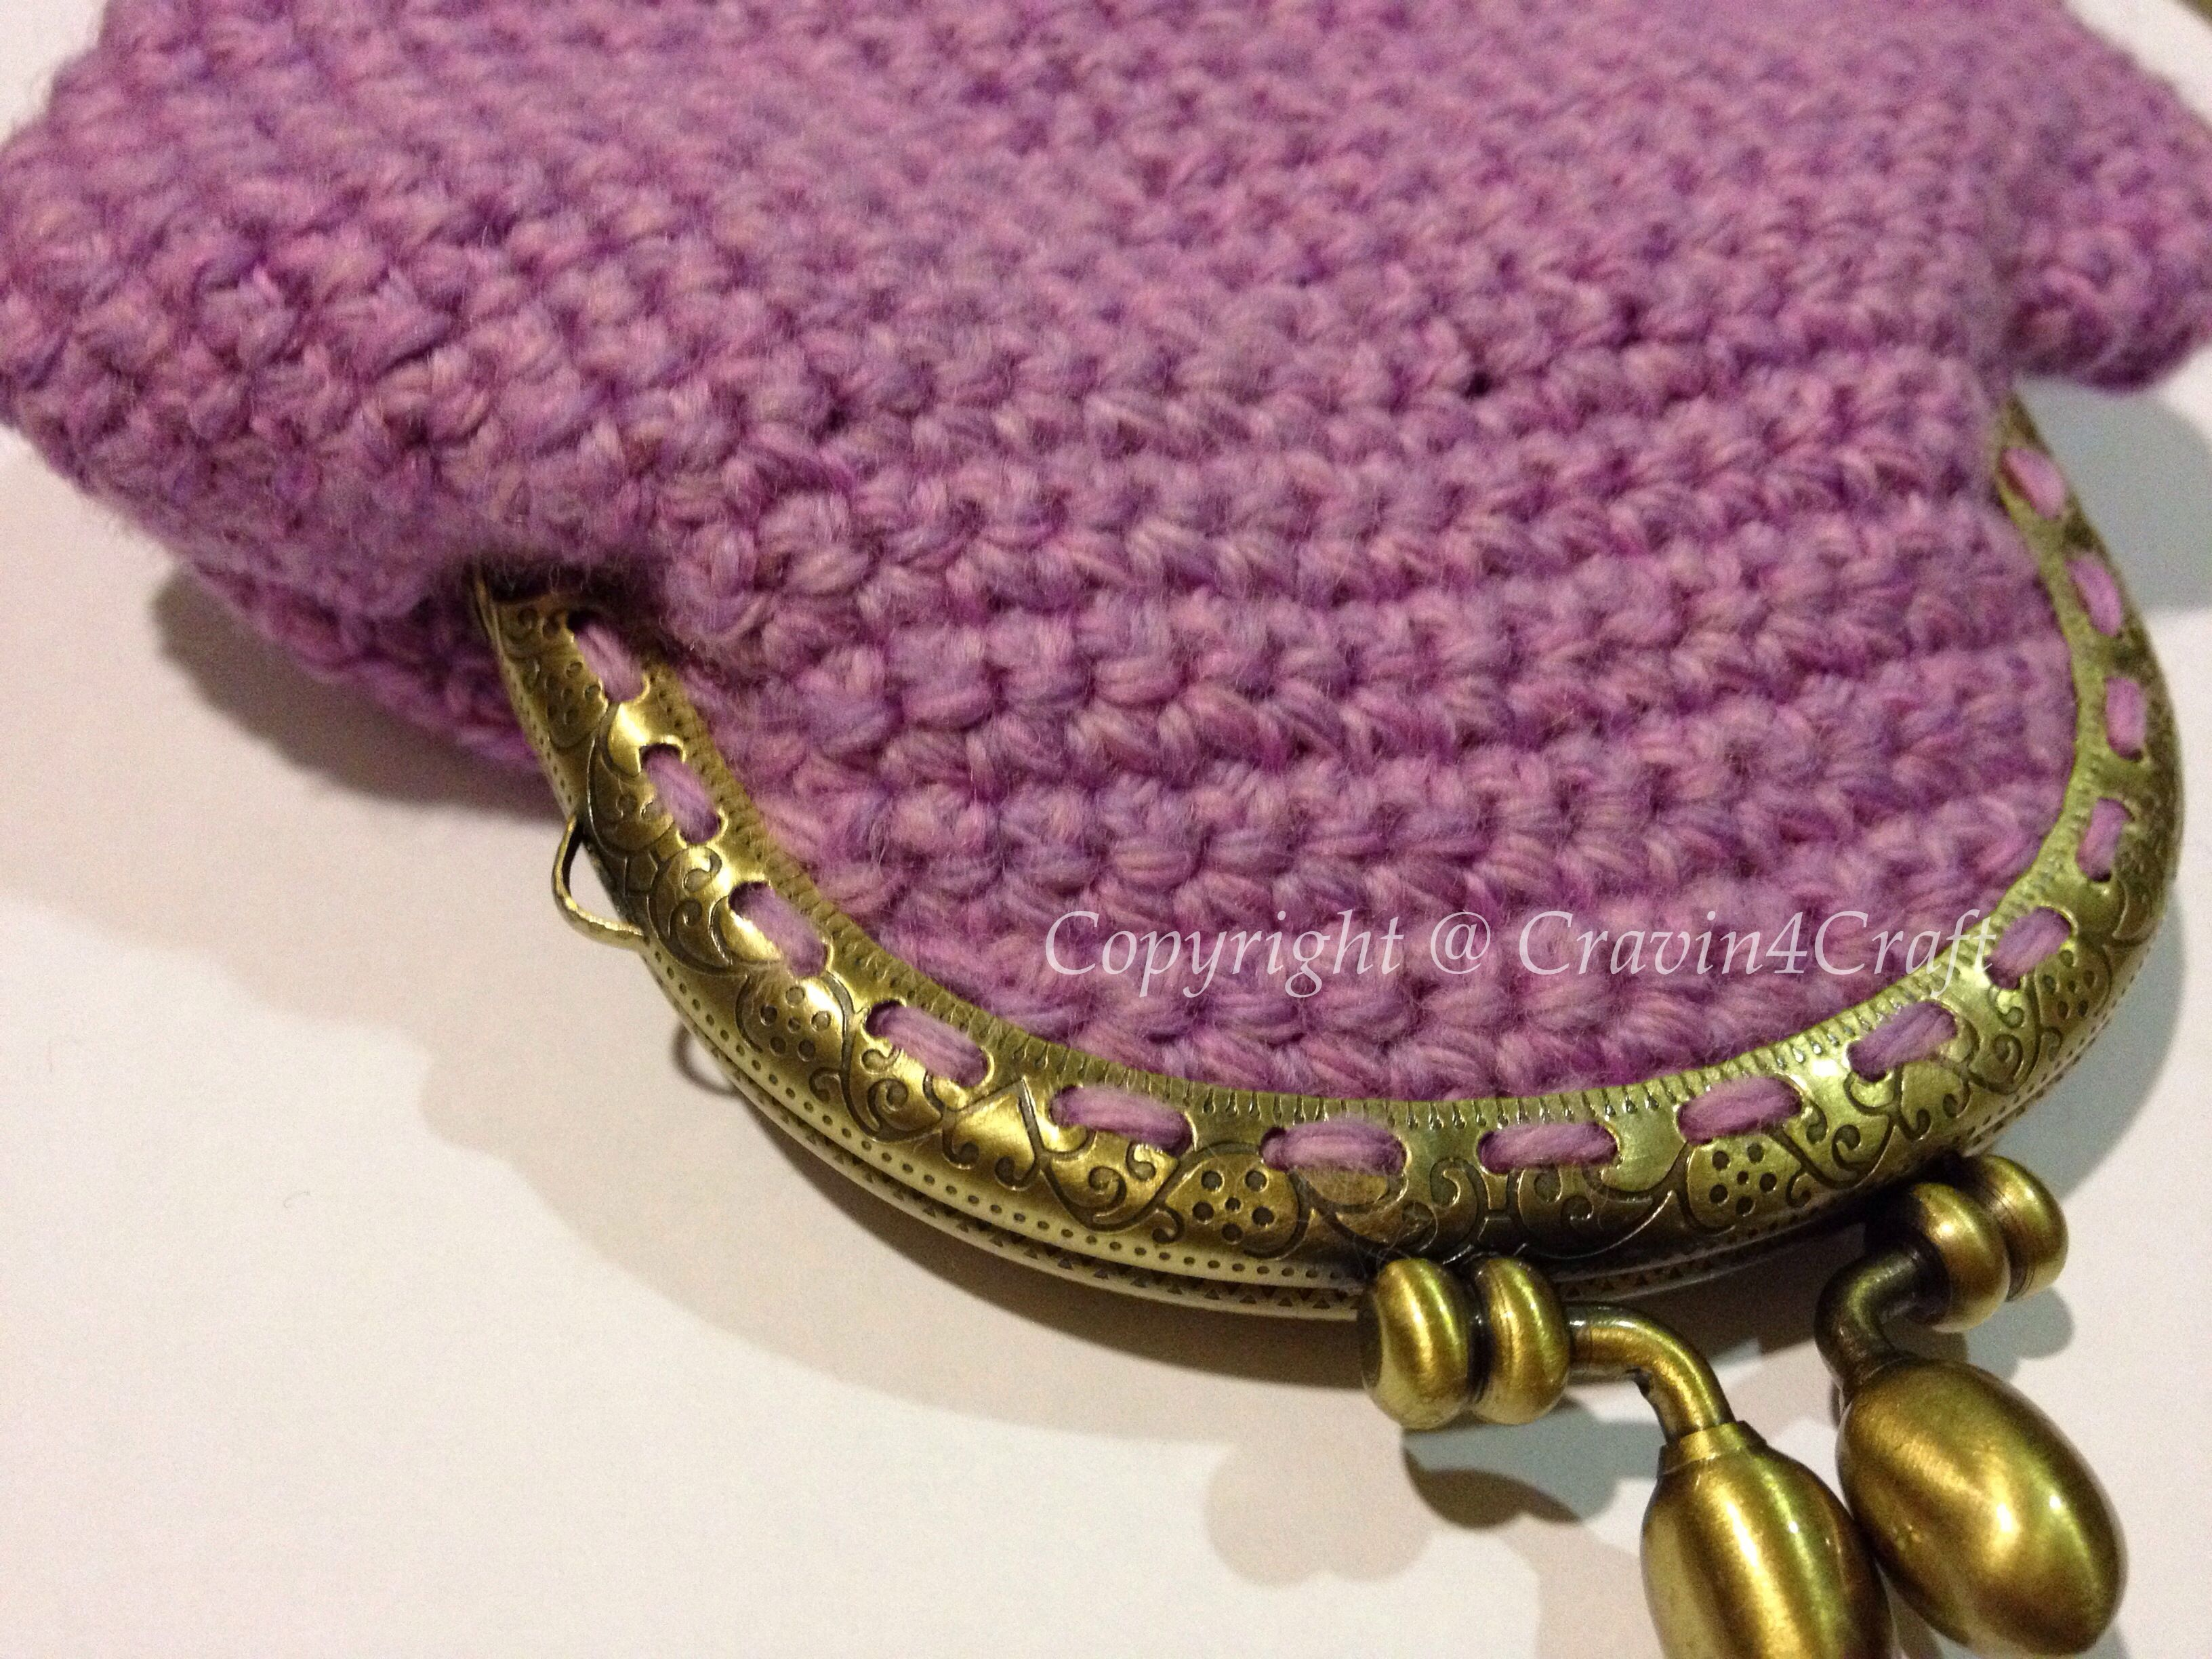 My very first crochet coin purse in purple